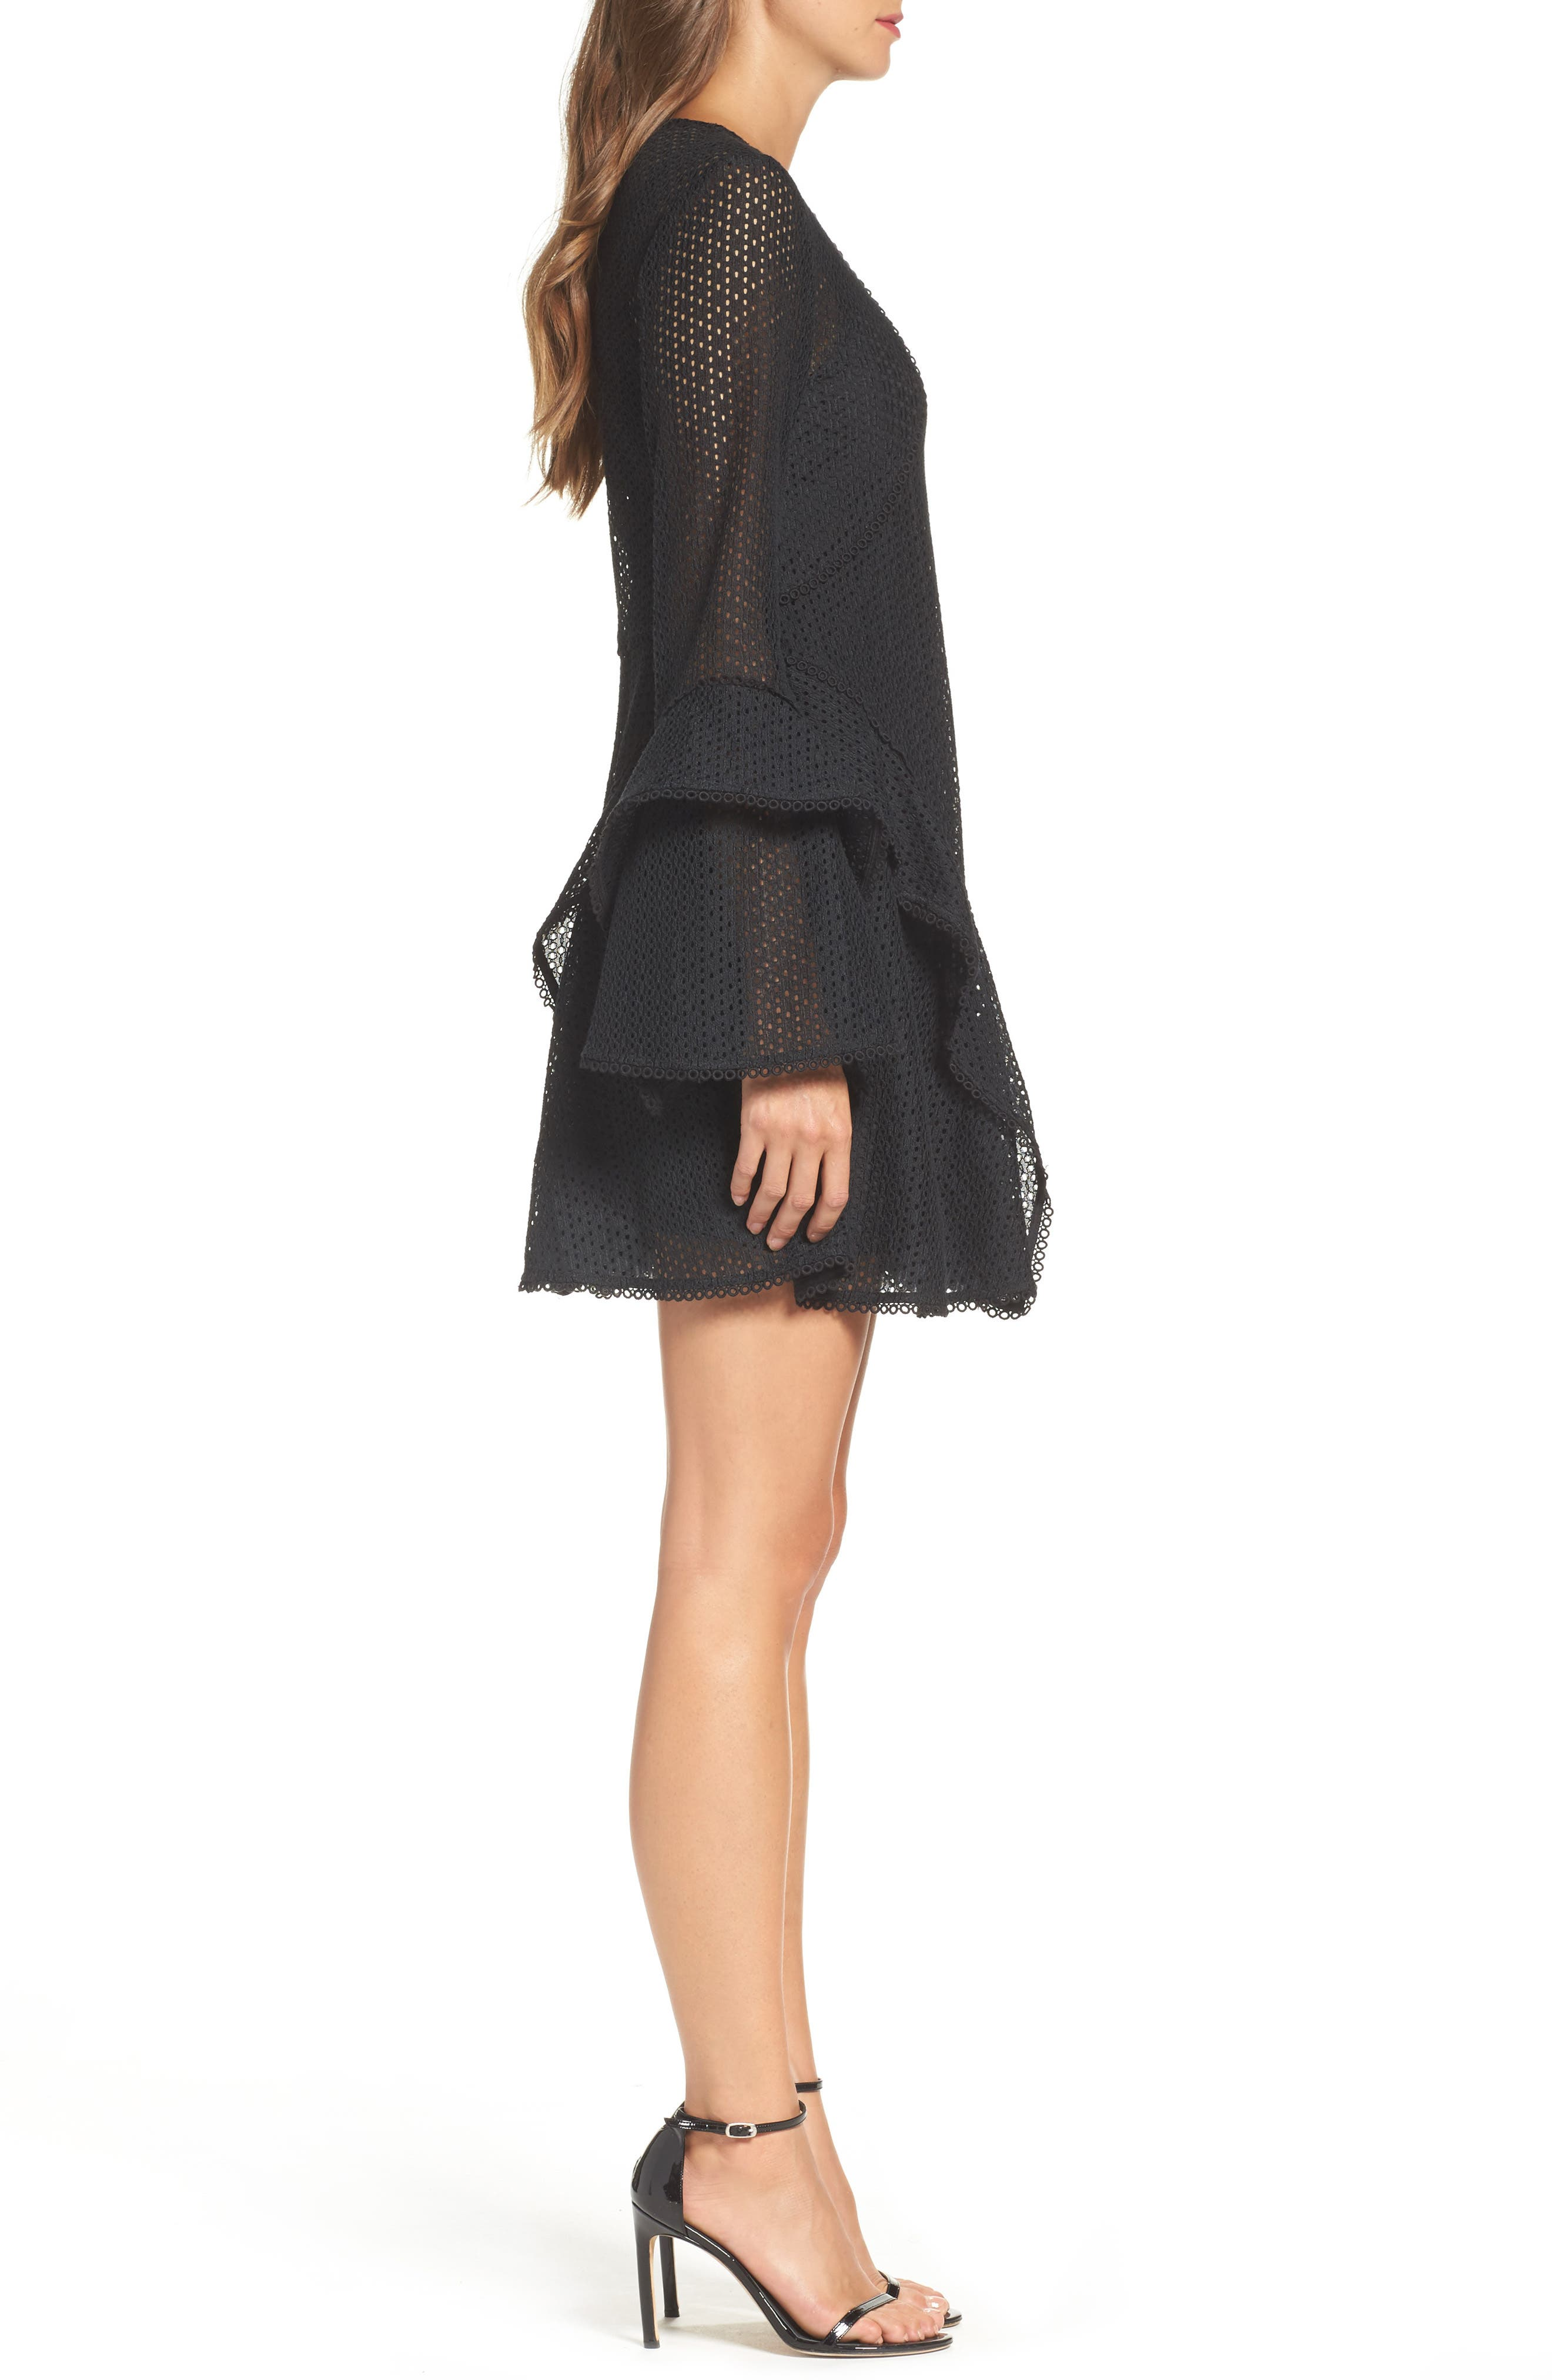 Aspire Lace Bell Sleeve Minidress,                             Alternate thumbnail 3, color,                             001